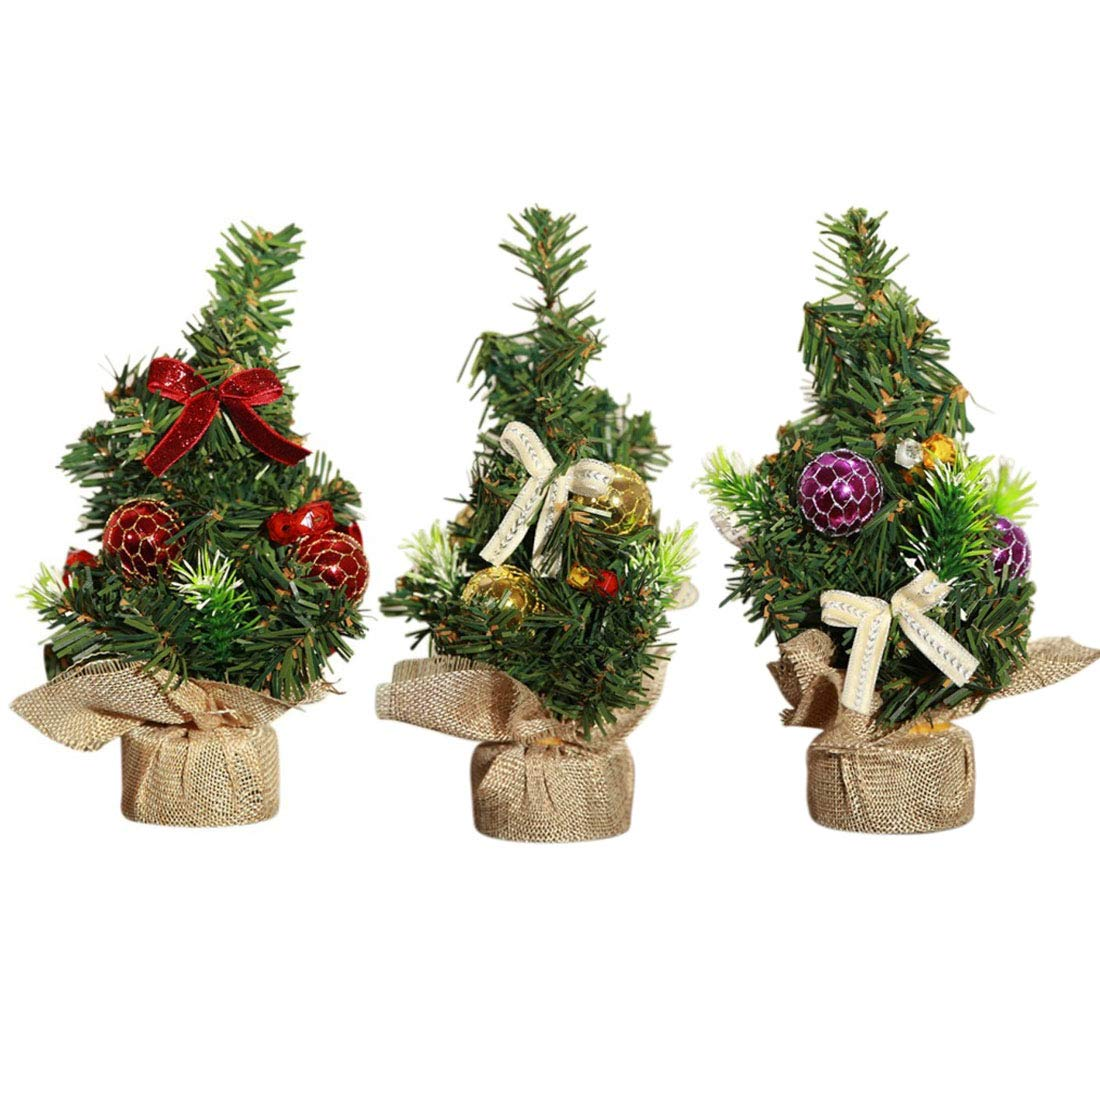 Superb Sunreek 3 Pieces Mini Artificial Christmas Tree With Ornaments Perfect Christmas Decoration For Table And Desk Tops Small 8Inch 20Cm Tall Christmas Home Interior And Landscaping Ologienasavecom